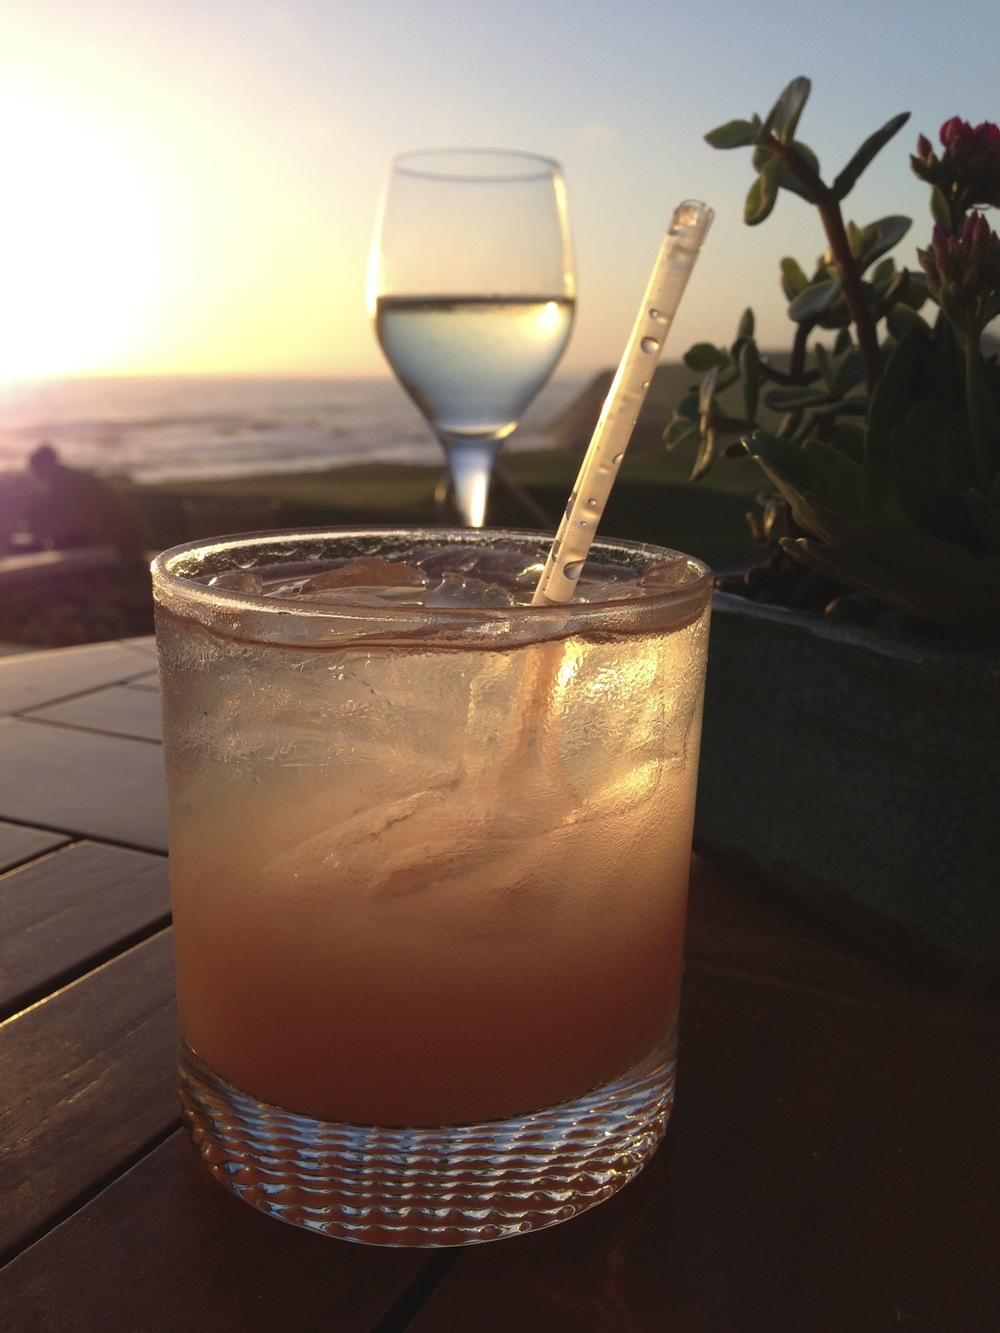 Speaking of trying something new, this was my first Greyhound. It's quite yummy. This was the view from the bar at the Ritz Carlton Half Moon Bay.